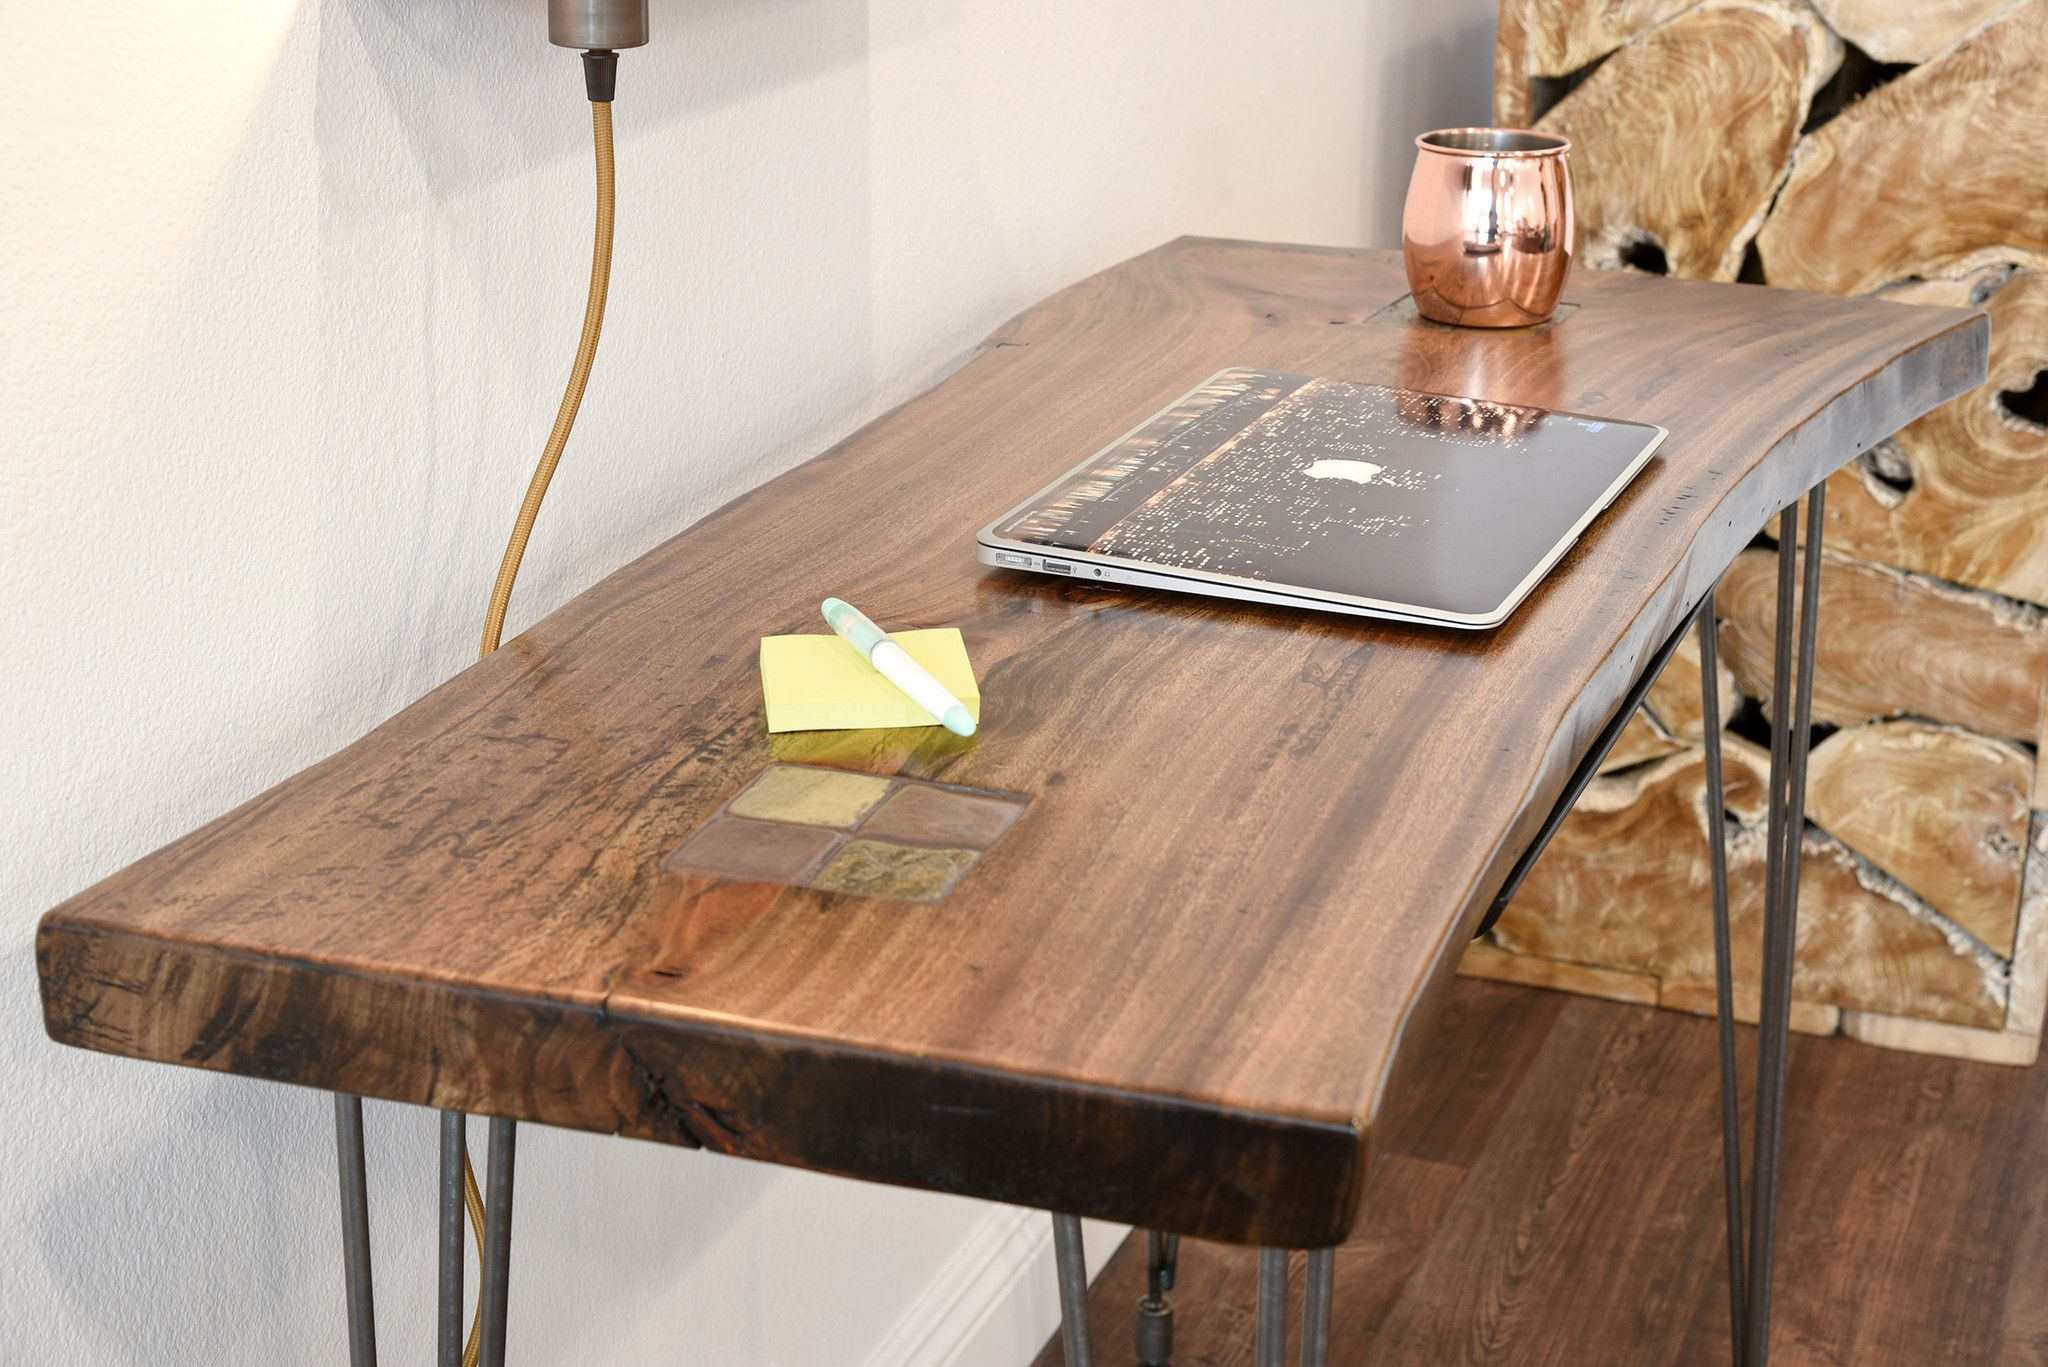 Delicieux Reclaimed Wood Live Edge Slab Desk